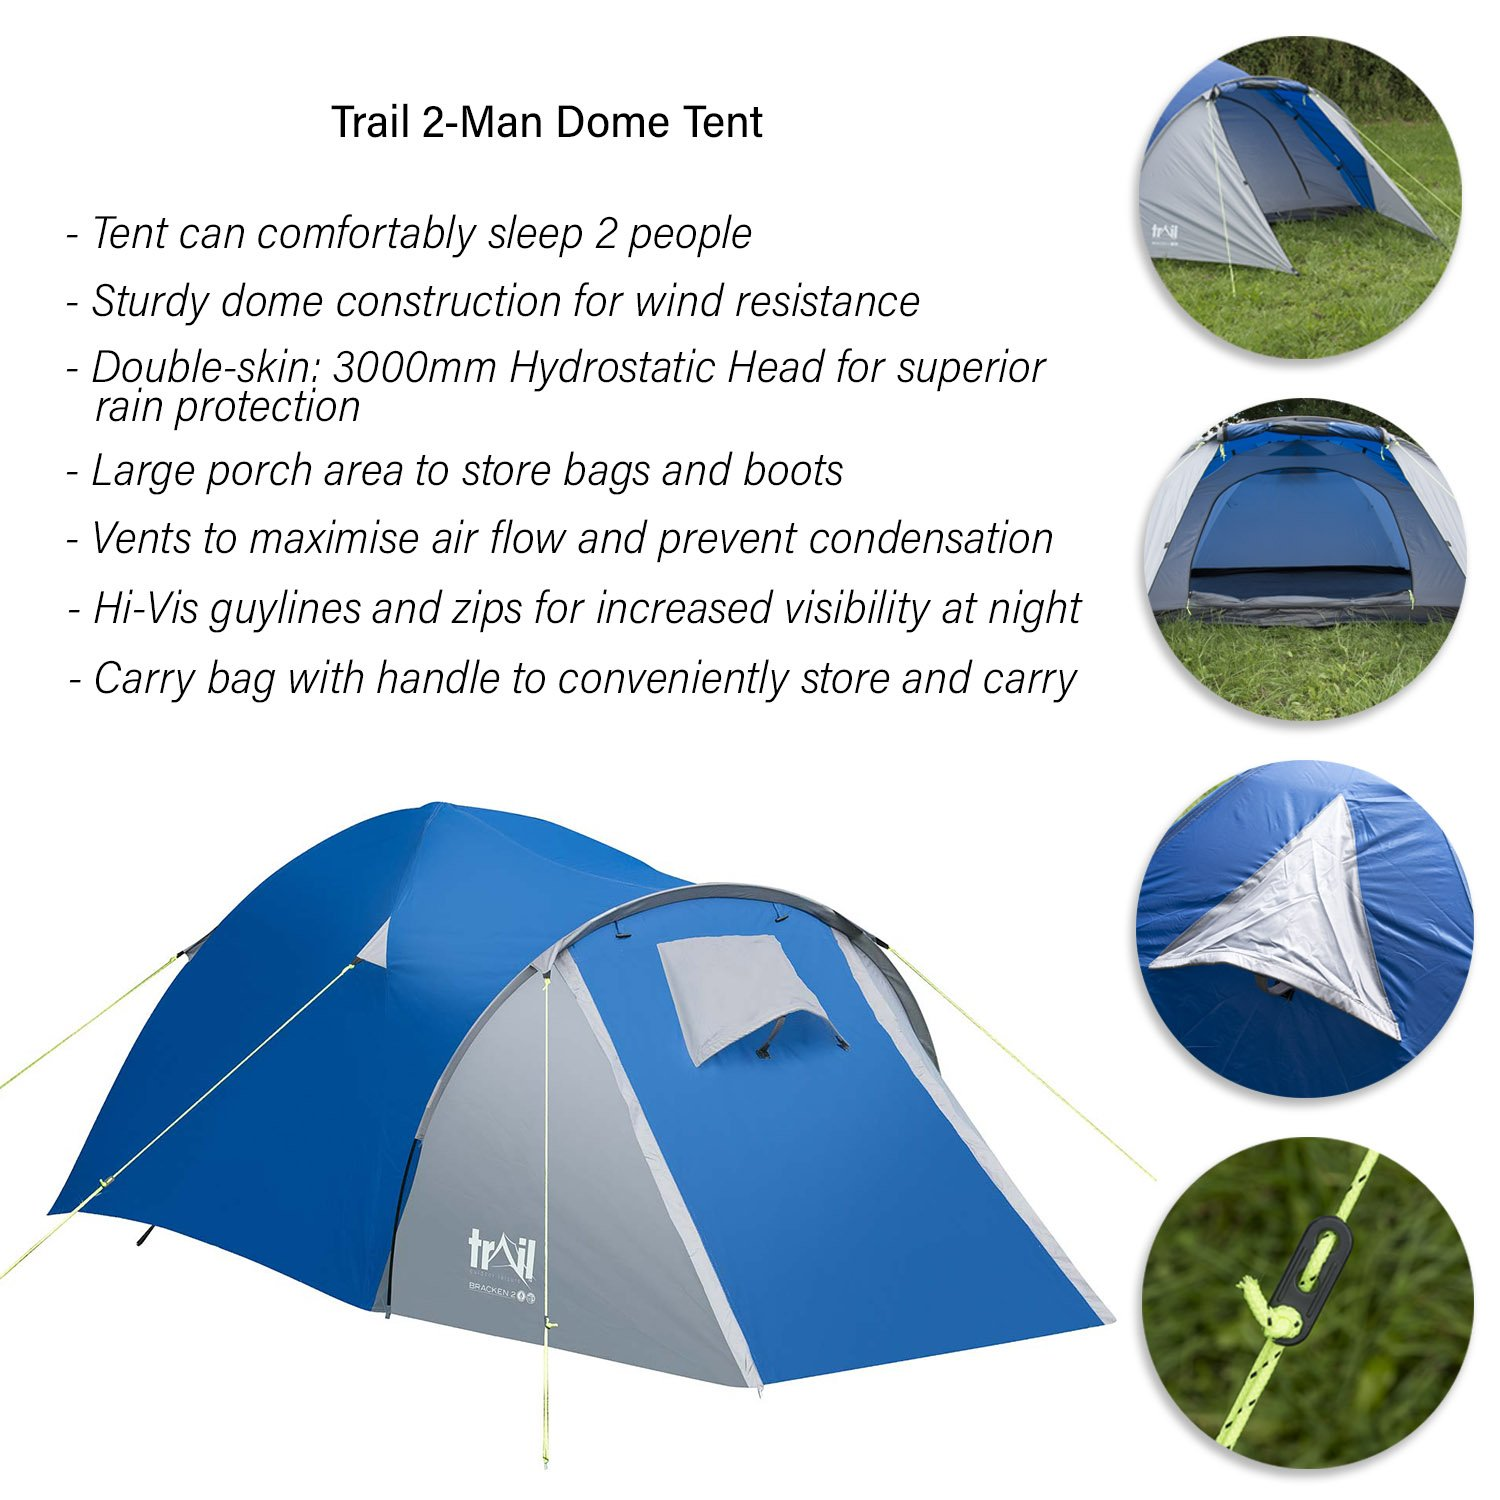 Trail 2 Man Dome Tent With Large Porch C&ing Festival Waterproof 3000mm HH Amazon.co.uk Sports u0026 Outdoors  sc 1 st  Amazon UK & Trail 2 Man Dome Tent With Large Porch Camping Festival Waterproof ...